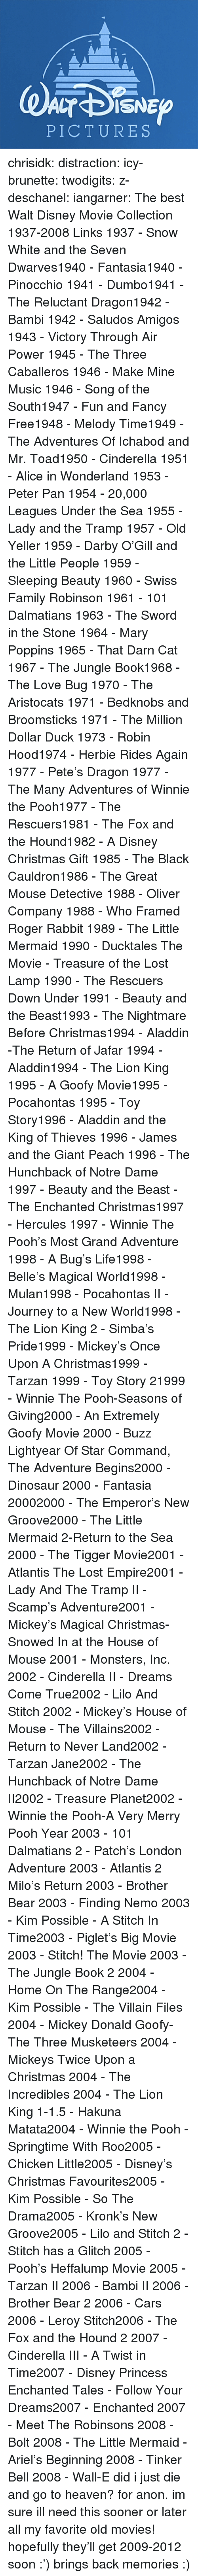 New Groove: PICTURES chrisidk:  distraction:   icy-brunette:   twodigits:   z-deschanel:   iangarner:   The best Walt Disney Movie Collection 1937-2008 Links     1937 - Snow White and the Seven Dwarves1940 - Fantasia1940 - Pinocchio 1941 - Dumbo1941 - The Reluctant Dragon1942 - Bambi 1942 - Saludos Amigos 1943 - Victory Through Air Power 1945 - The Three Caballeros 1946 - Make Mine Music 1946 - Song of the South1947 - Fun and Fancy Free1948 - Melody Time1949 - The Adventures Of Ichabod and Mr. Toad1950 - Cinderella 1951 - Alice in Wonderland 1953 - Peter Pan 1954 - 20,000 Leagues Under the Sea 1955 - Lady and the Tramp 1957 - Old Yeller 1959 - Darby O'Gill and the Little People 1959 - Sleeping Beauty 1960 - Swiss Family Robinson 1961 - 101 Dalmatians 1963 - The Sword in the Stone 1964 - Mary Poppins 1965 - That Darn Cat 1967 - The Jungle Book1968 - The Love Bug 1970 - The Aristocats 1971 - Bedknobs and Broomsticks 1971 - The Million Dollar Duck 1973 - Robin Hood1974 - Herbie Rides Again 1977 - Pete's Dragon 1977 - The Many Adventures of Winnie the Pooh1977 - The Rescuers1981 - The Fox and the Hound1982 - A Disney Christmas Gift 1985 - The Black Cauldron1986 - The Great Mouse Detective 1988 - Oliver  Company 1988 - Who Framed Roger Rabbit 1989 - The Little Mermaid 1990 - Ducktales The Movie - Treasure of the Lost Lamp 1990 - The Rescuers Down Under 1991 - Beauty and the Beast1993 - The Nightmare Before Christmas1994 - Aladdin -The Return of Jafar 1994 - Aladdin1994 - The Lion King 1995 - A Goofy Movie1995 - Pocahontas 1995 - Toy Story1996 - Aladdin and the King of Thieves 1996 - James and the Giant Peach 1996 - The Hunchback of Notre Dame 1997 - Beauty and the Beast - The Enchanted Christmas1997 - Hercules 1997 - Winnie The Pooh's Most Grand Adventure 1998 - A Bug's Life1998 - Belle's Magical World1998 - Mulan1998 - Pocahontas II - Journey to a New World1998 - The Lion King 2 - Simba's Pride1999 - Mickey's Once Upon A Christmas1999 - Tarzan 1999 - Toy Story 21999 - W